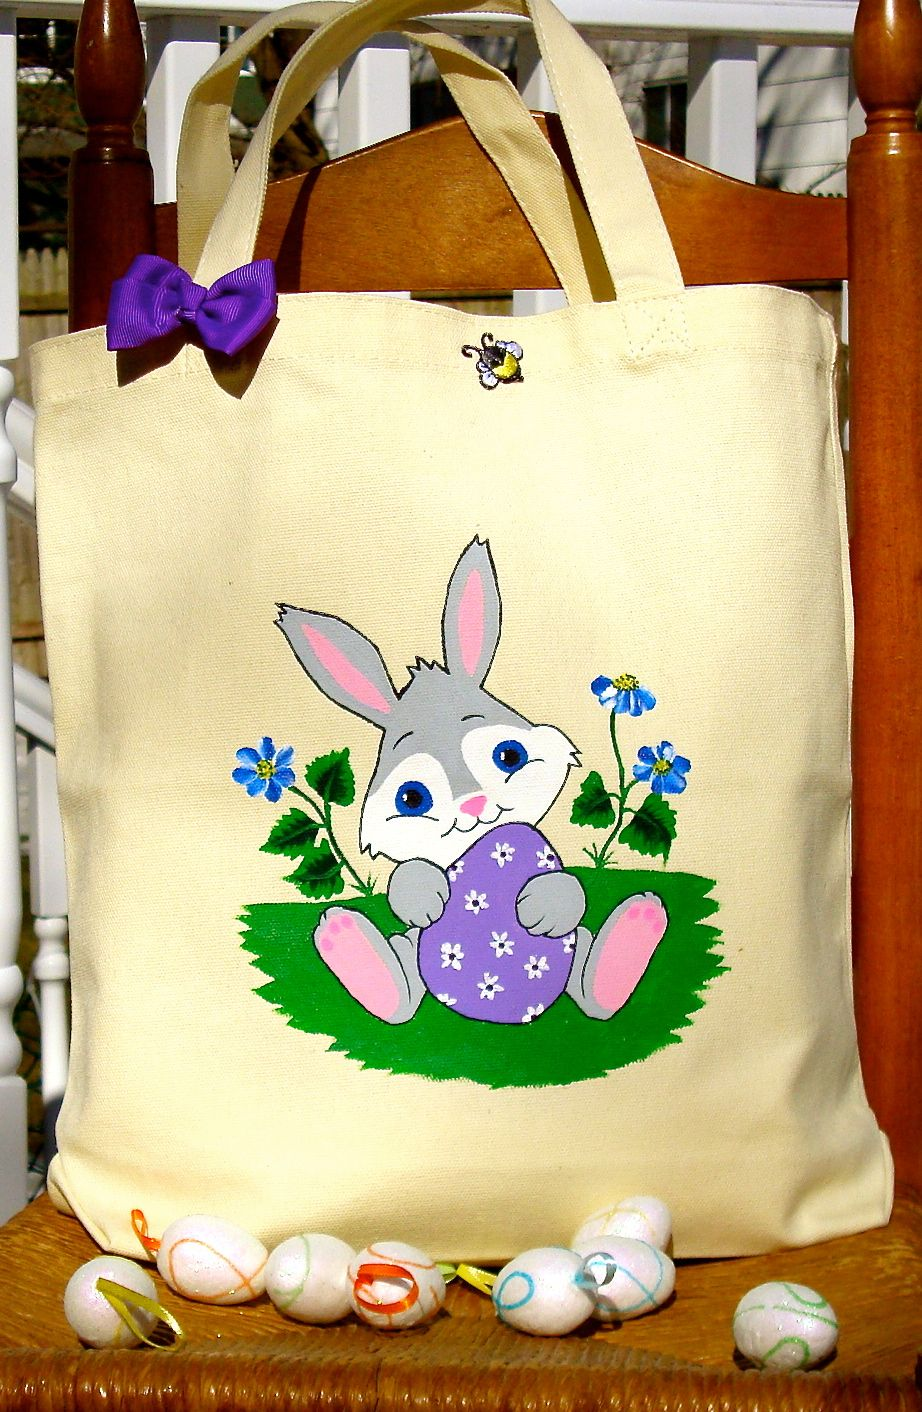 Hand Painted Easter Bunny With Egg Tote Bag by Paint It Pretty - $25.00 - Handmade Accessories, Crafts and Unique Gifts by It's In The Bag